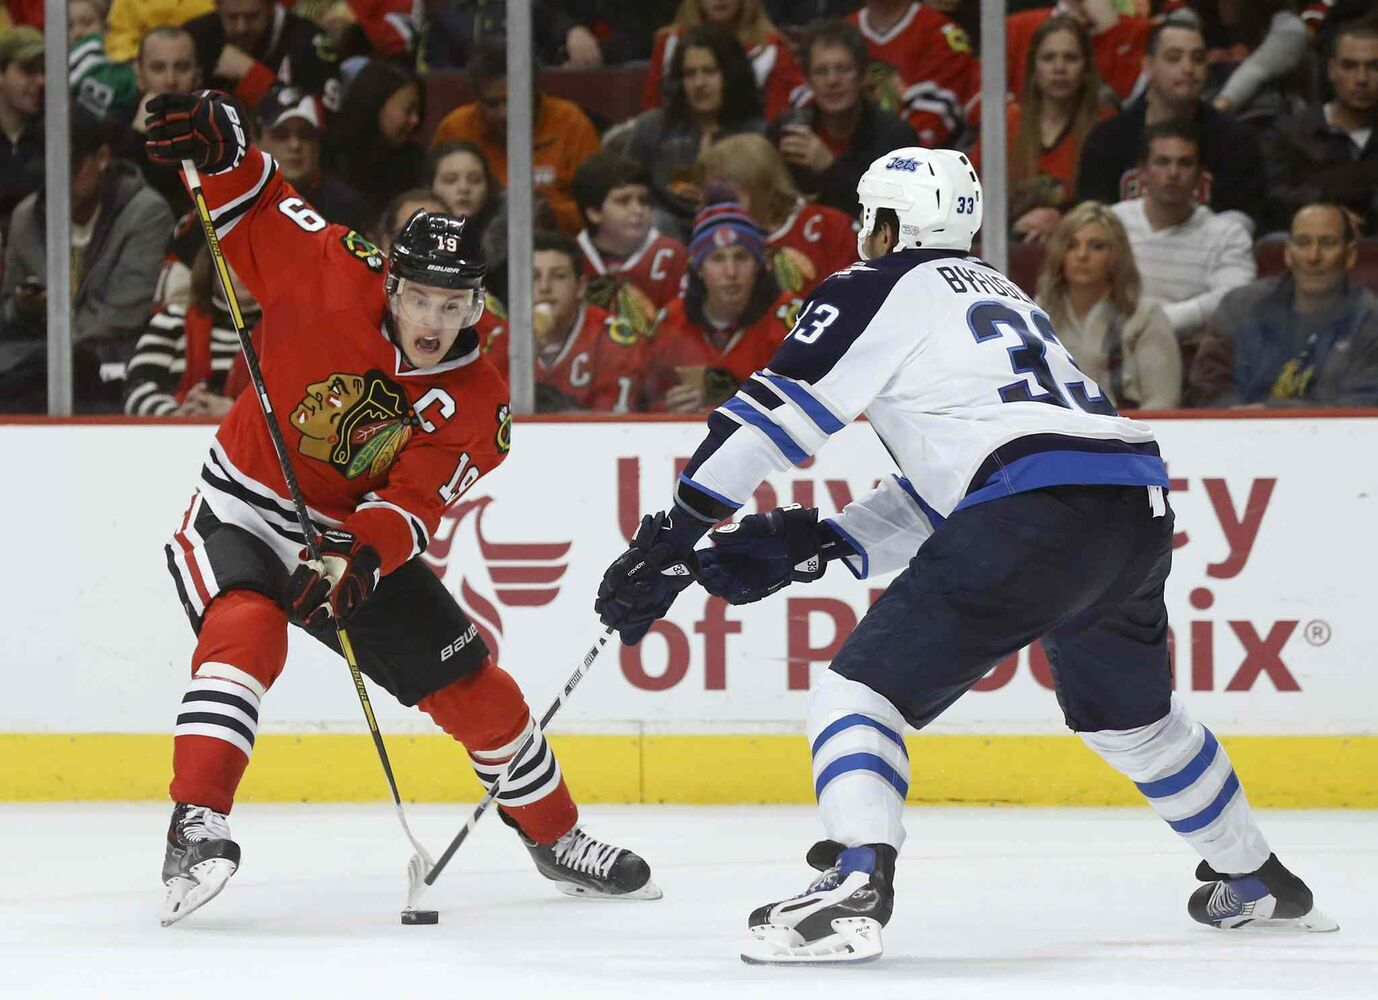 Blackhawks captain Jonathan Toews tries to dangle past the Jets' Dustin Byfuglien. (Charles Rex Arbogast / The Associated Press)